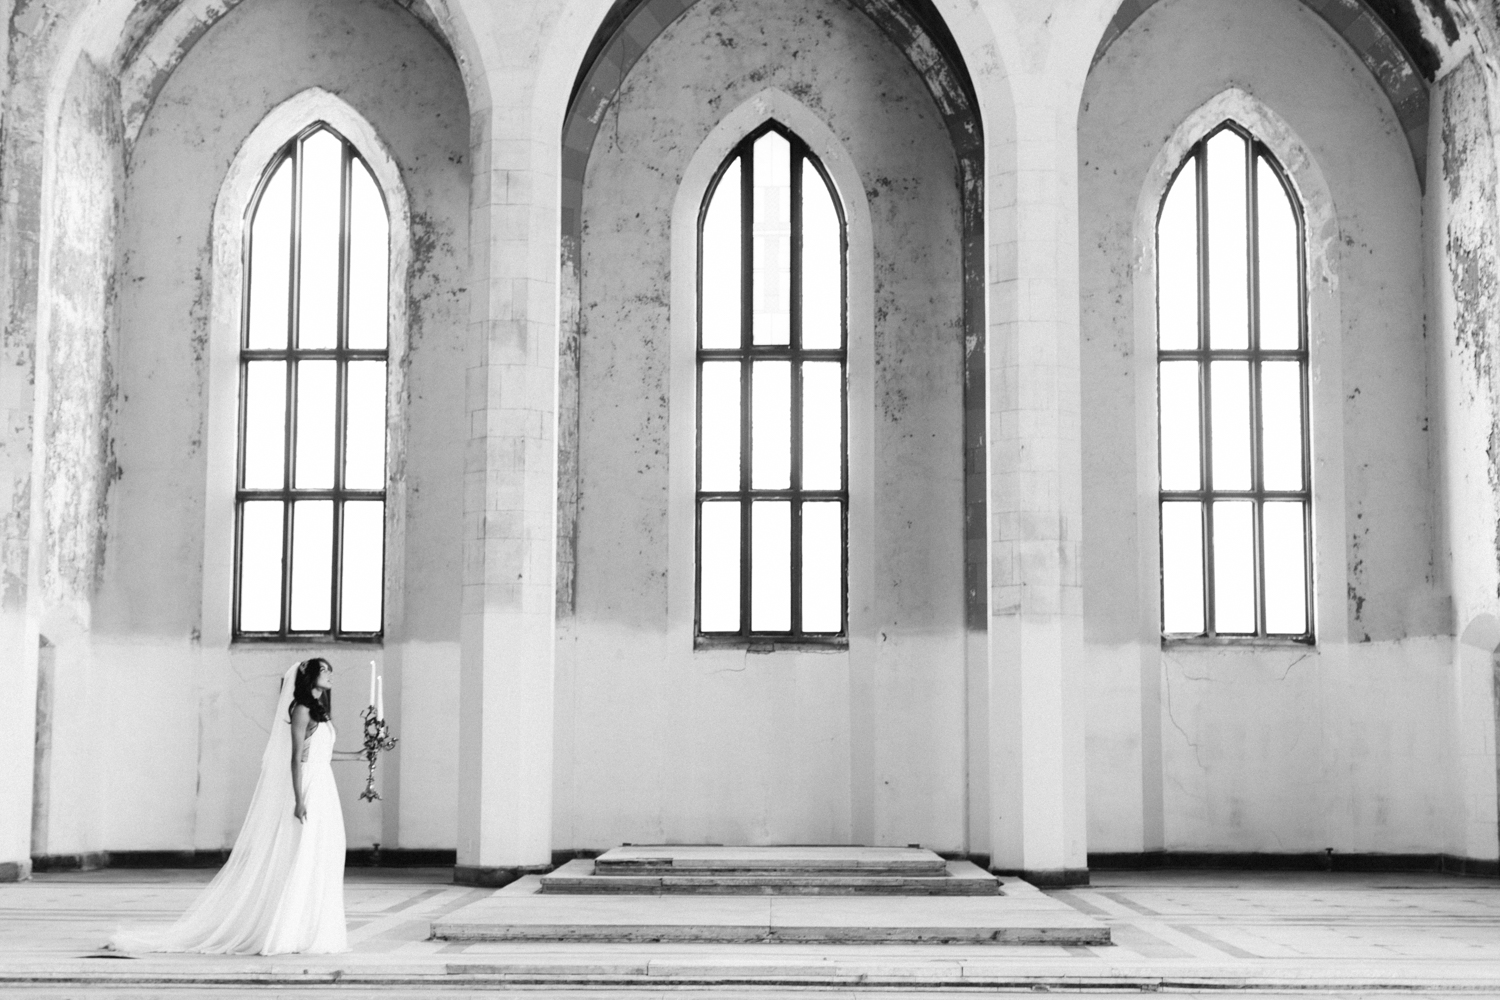 A bride explores the abandoned cathedral location of her destination wedding with an ornate candelabra